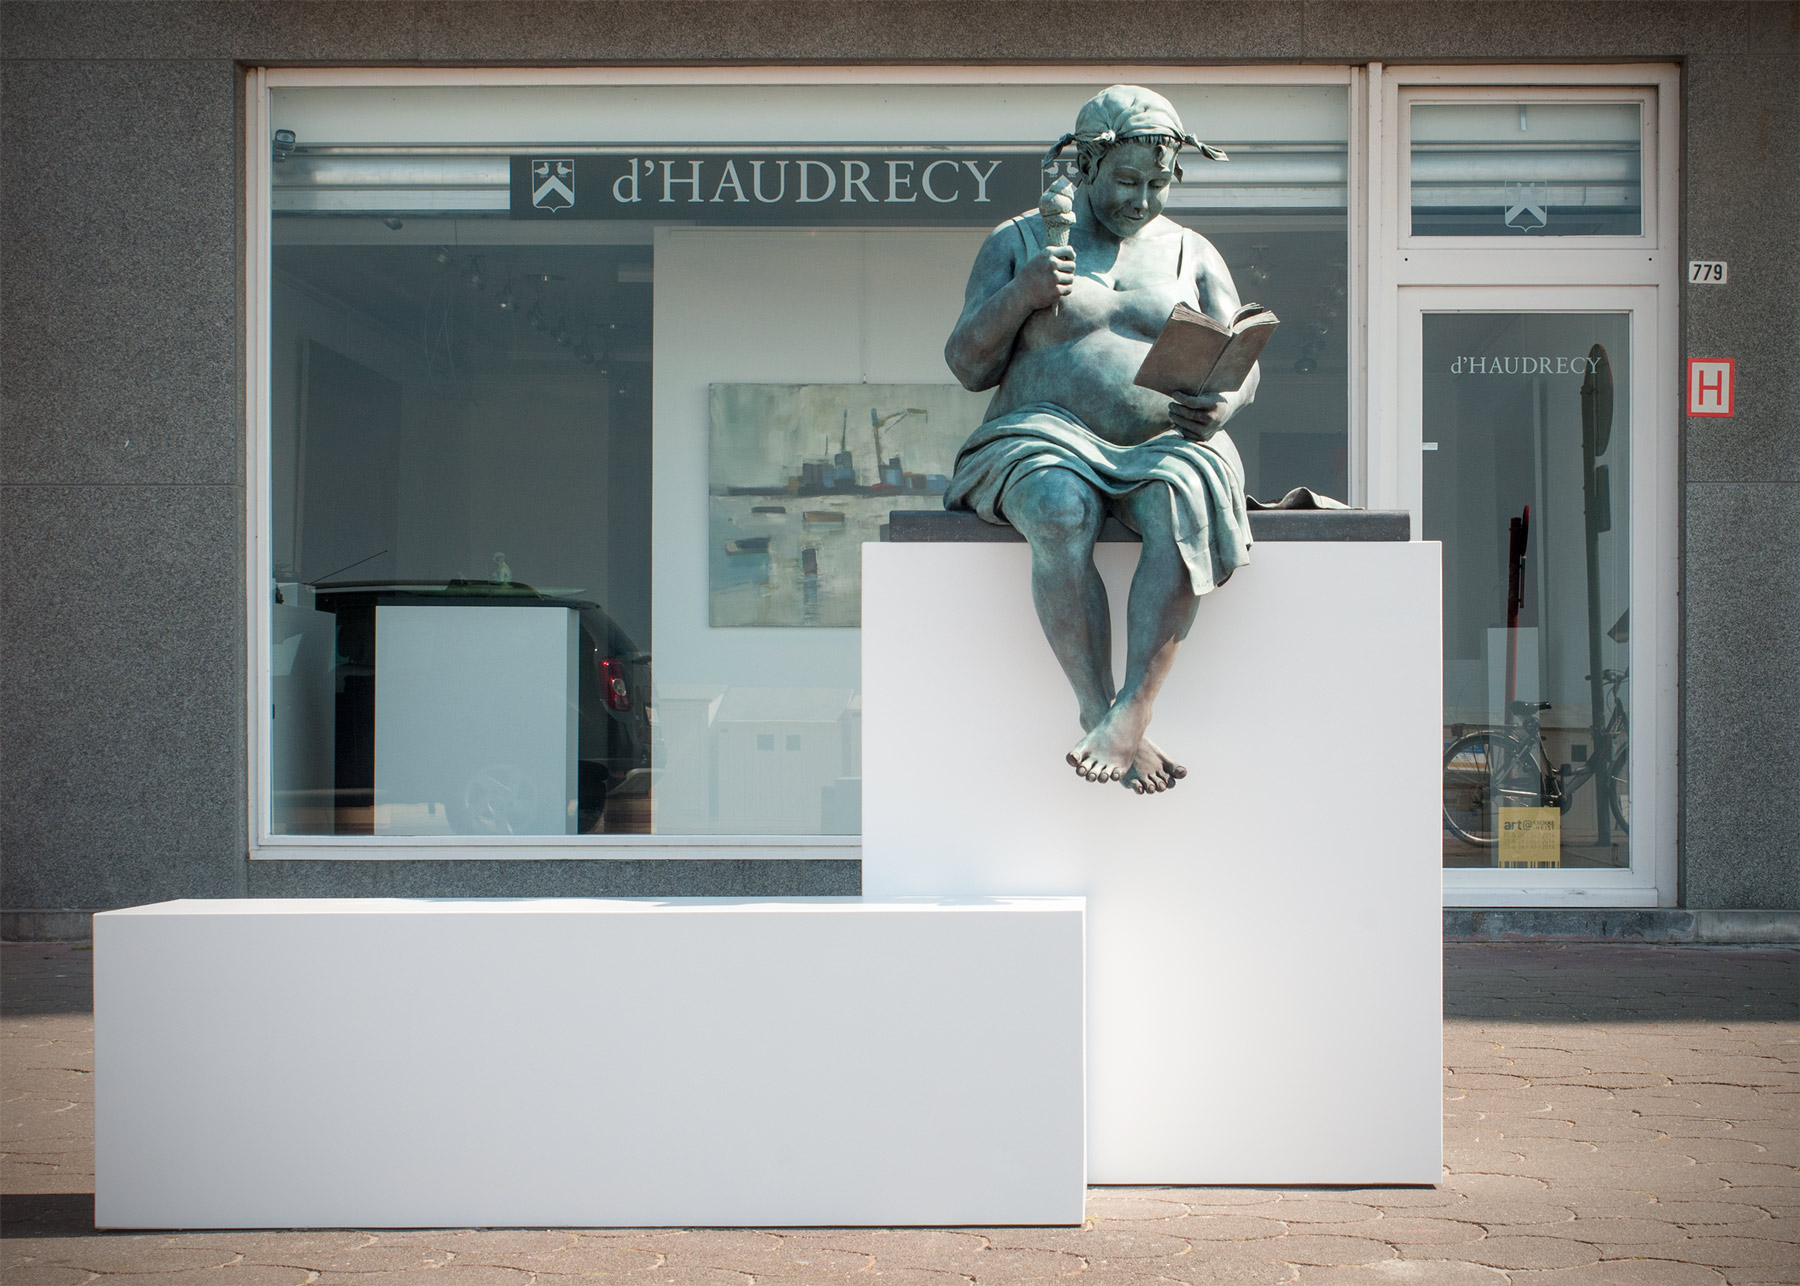 d'Haudrecy Art Gallery Knokke Belgium